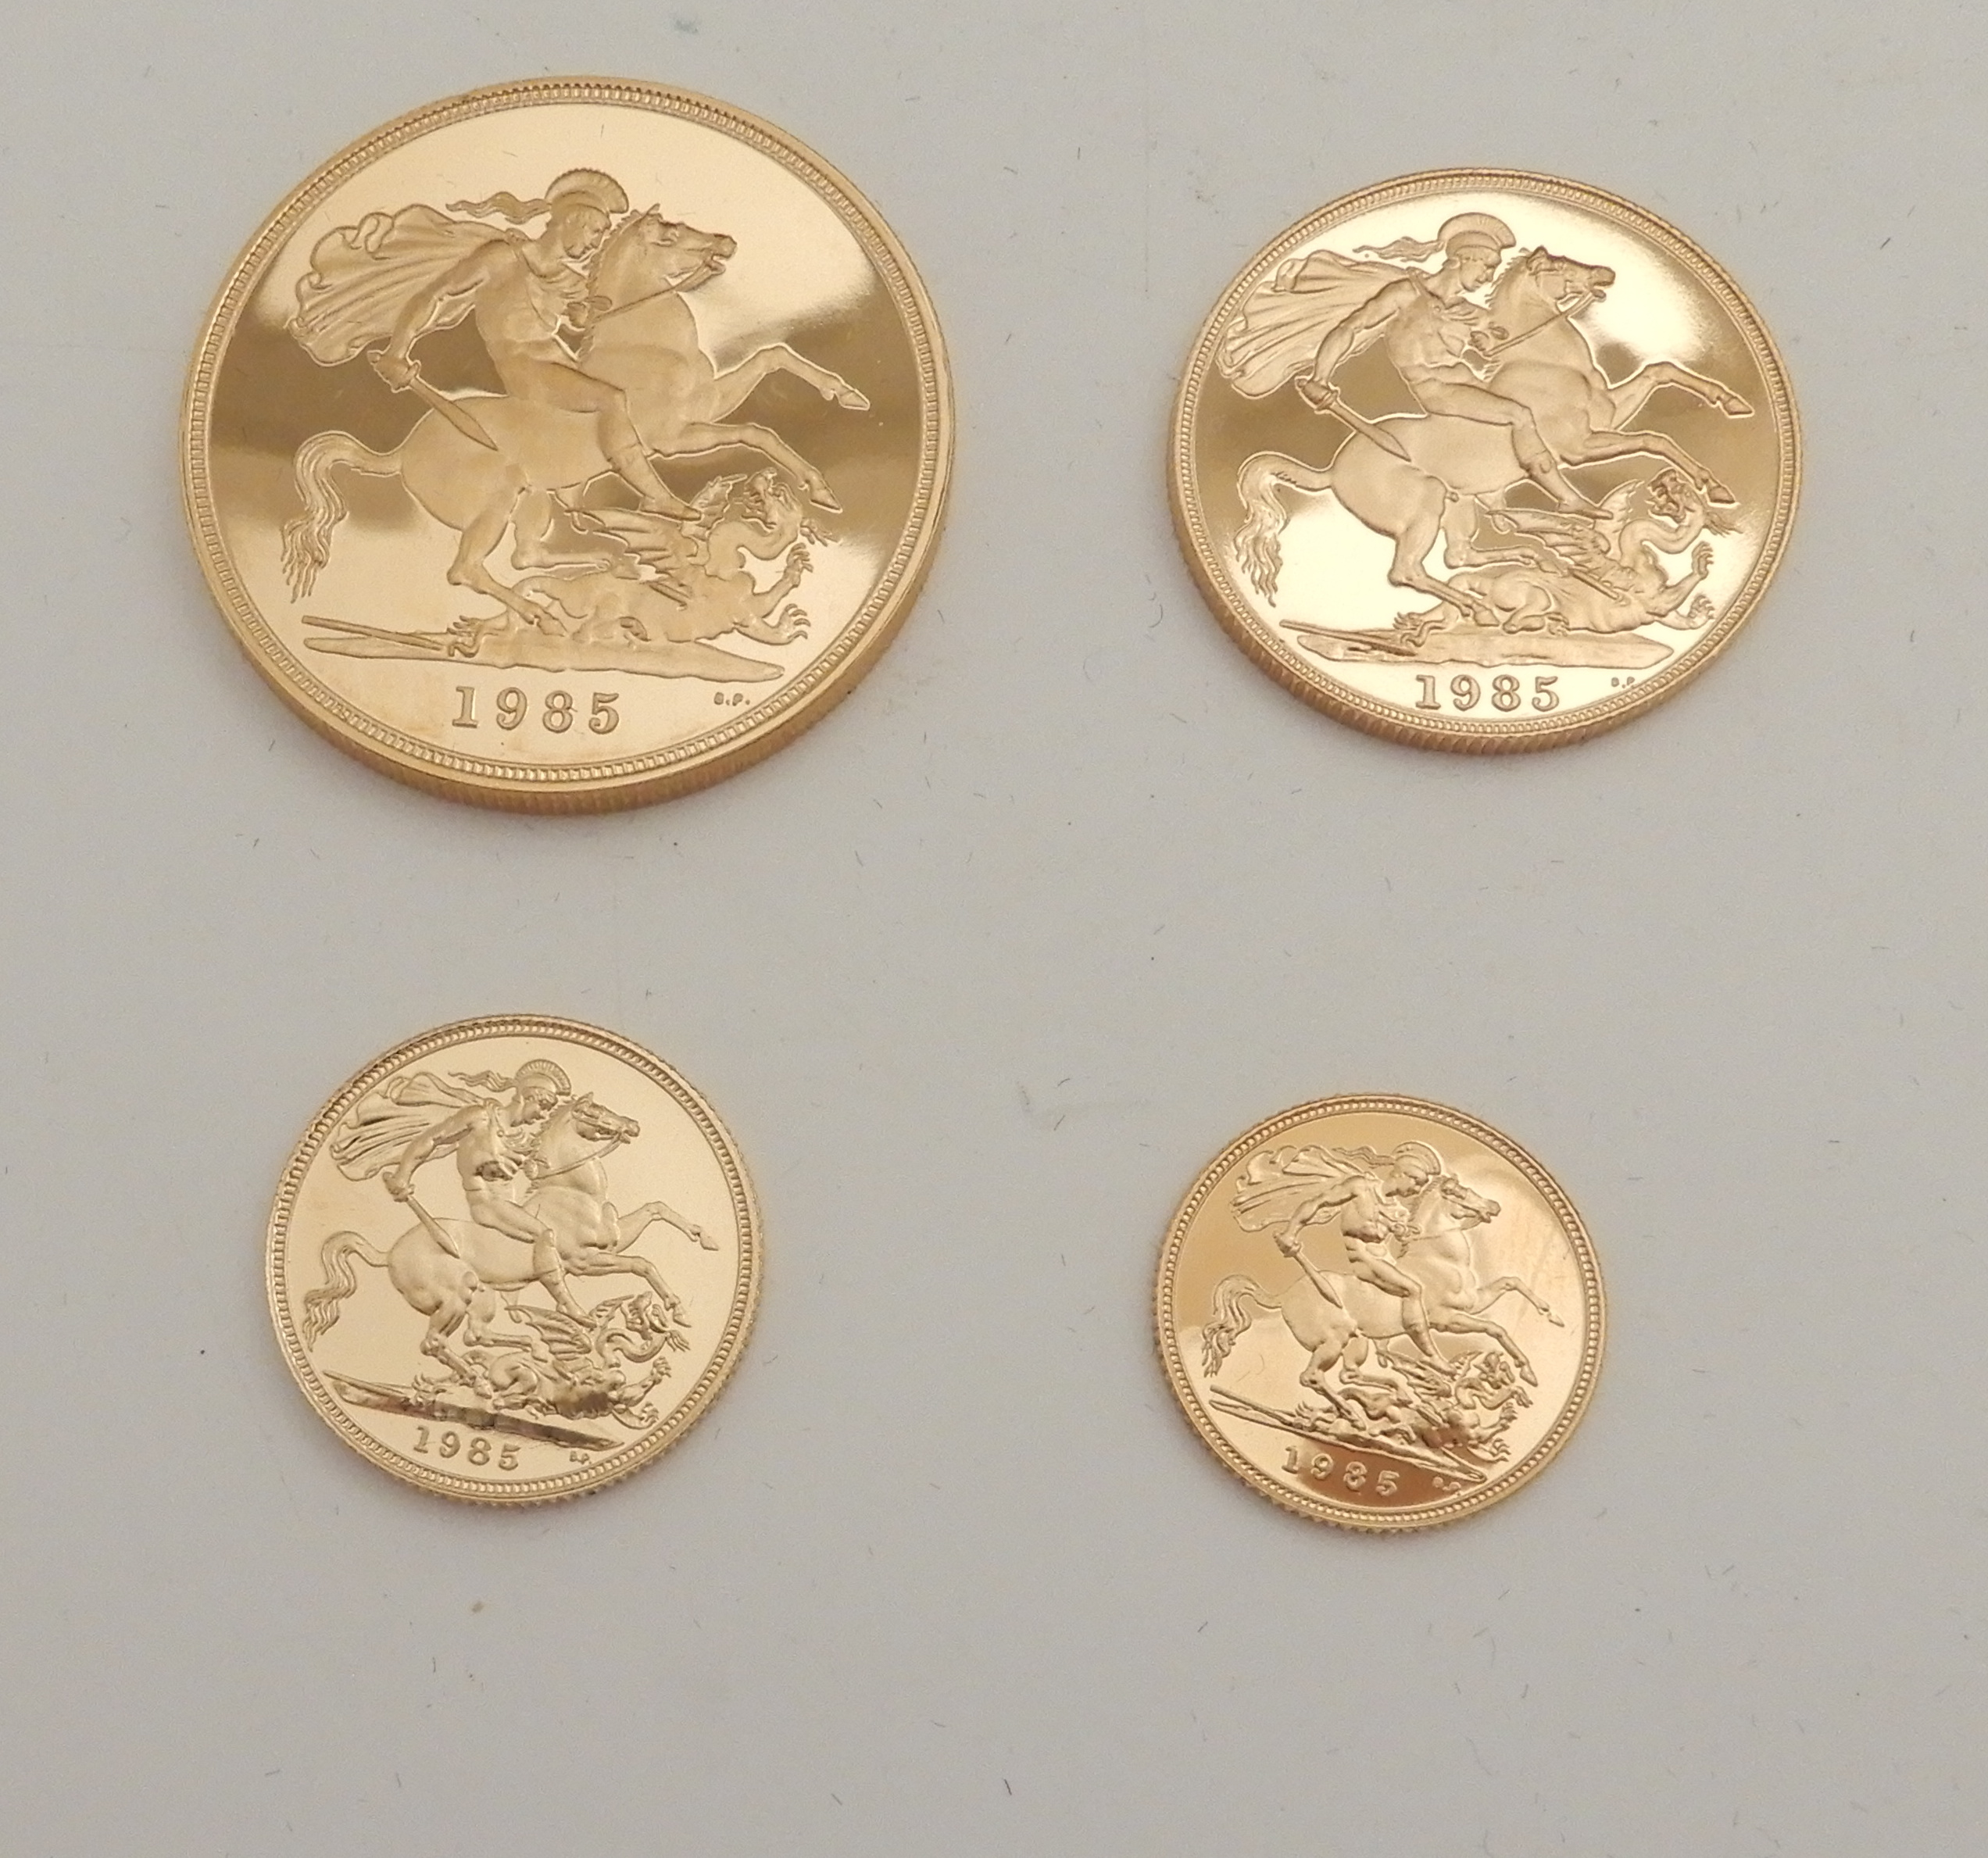 Lot 196 - A 1985 UNITED KINGDOM GOLD FOUR-COIN PROOF SET £5, £2, full sovereign and half sovereign (with